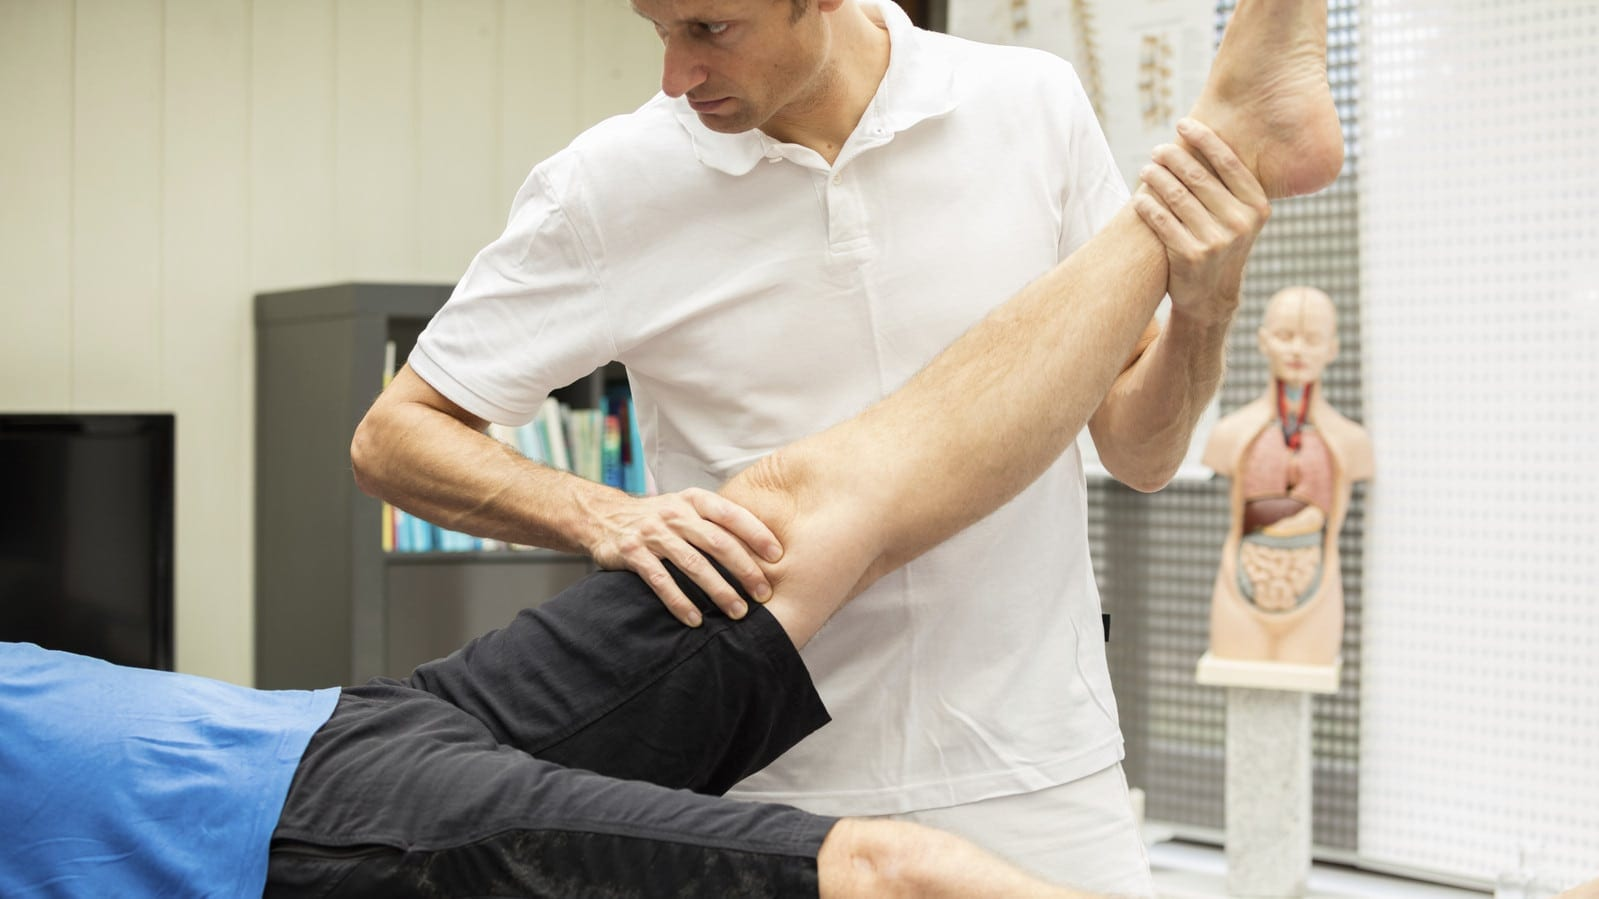 Medical Professional Examining Man's Injured Leg Stock Photo